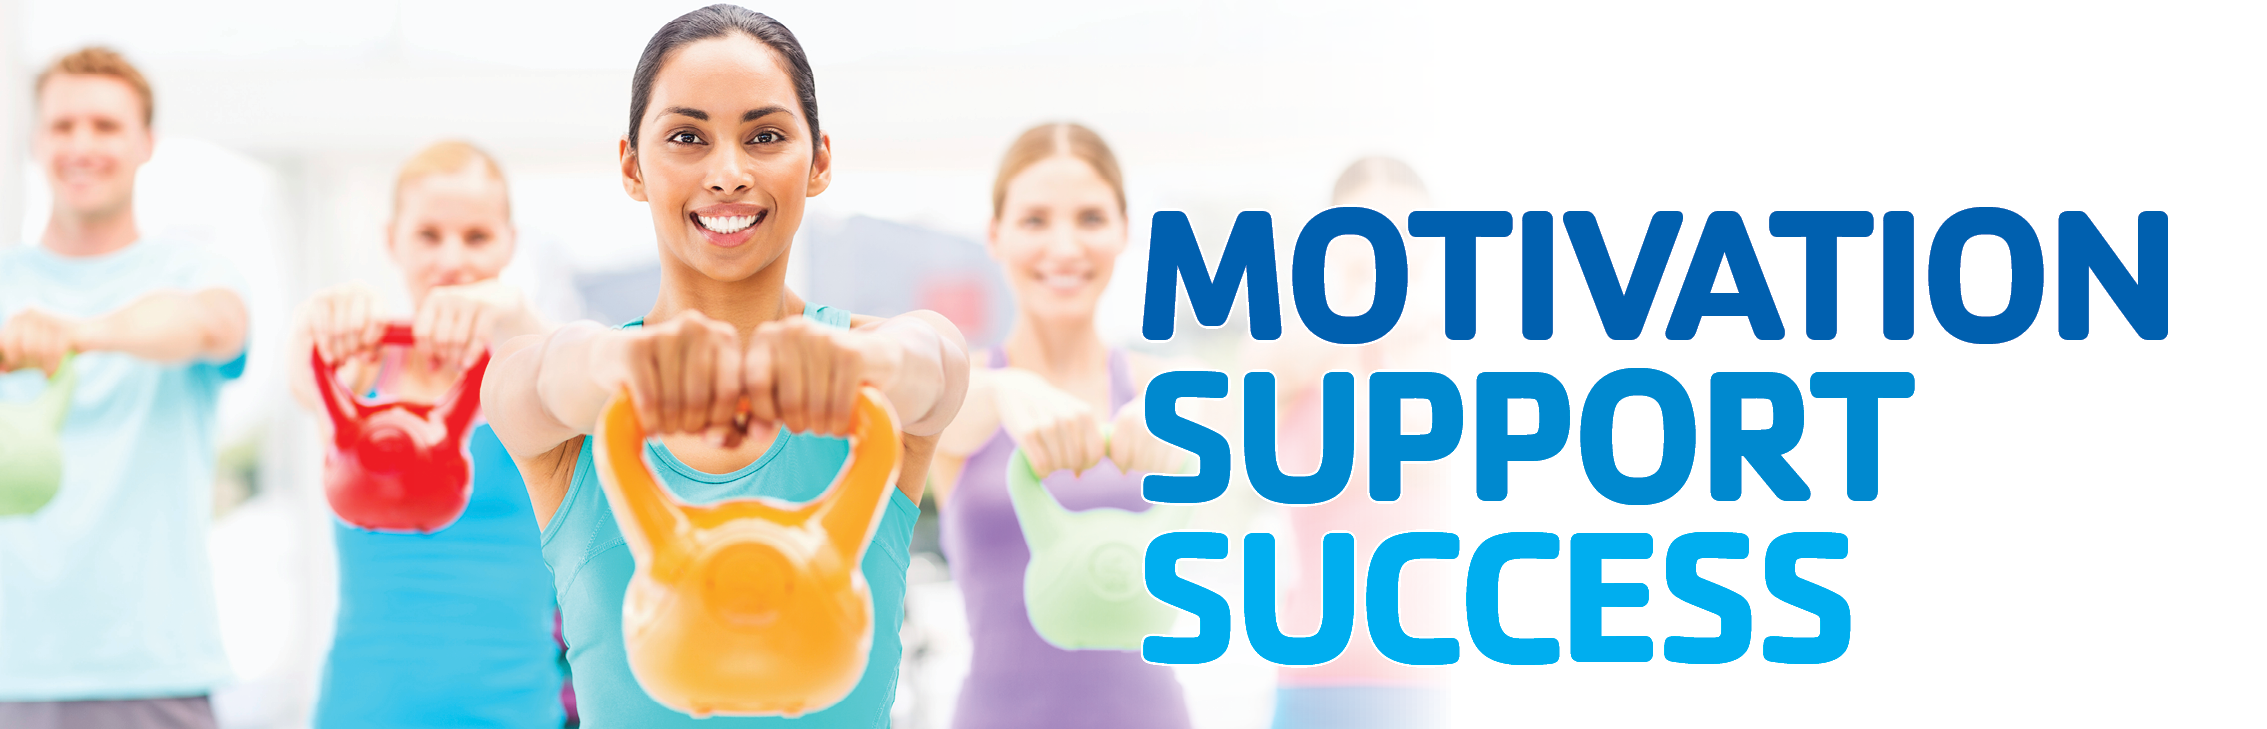 http://mtrymca.org/sites/mtrymca.org/assets/images/schedules/hero-ymca-group-training-motivation-support-success-kettlebells.png